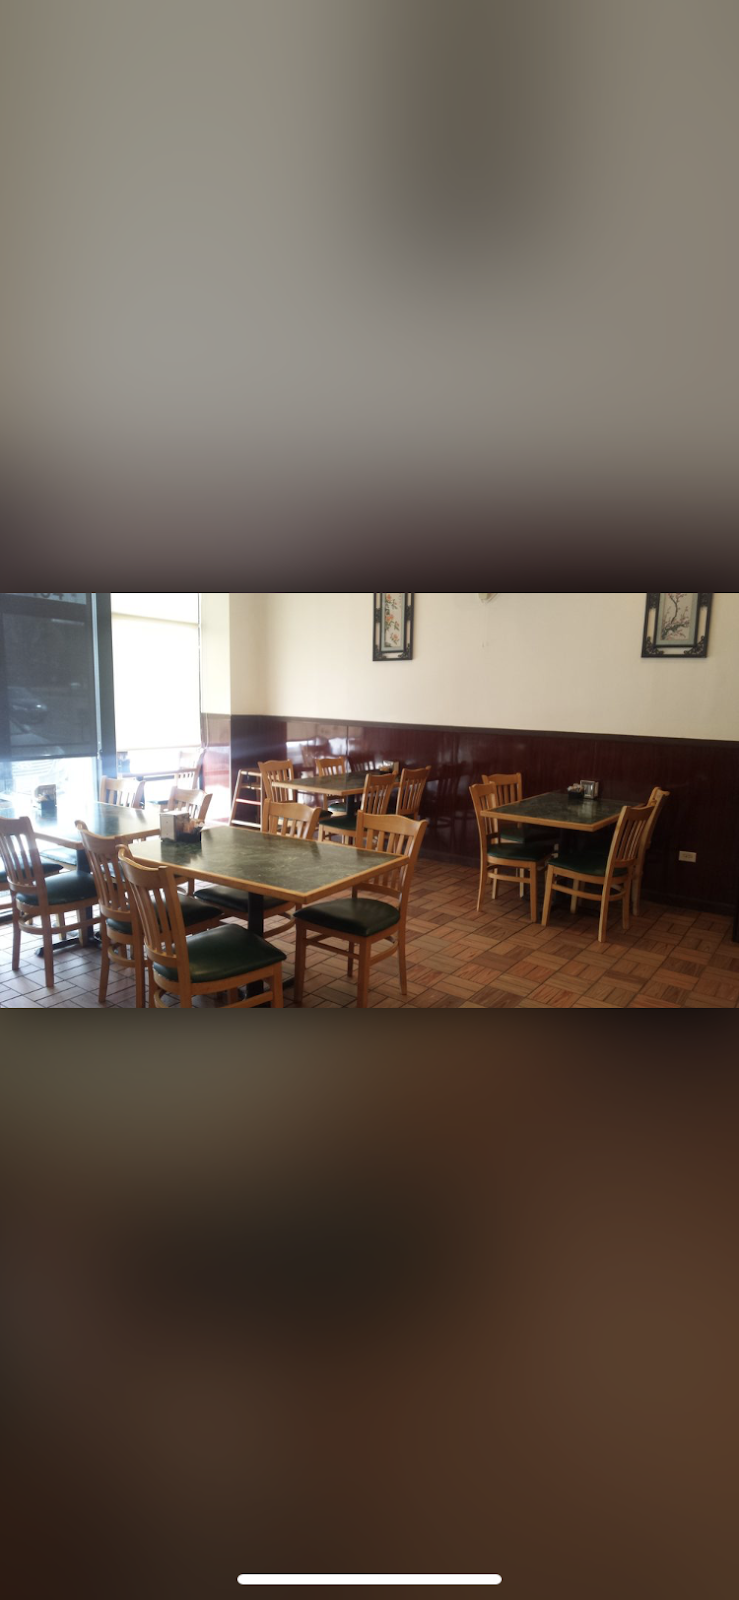 East Asia Place | restaurant | 646 S Frontenac St, Aurora, IL 60504, USA | 6308200670 OR +1 630-820-0670